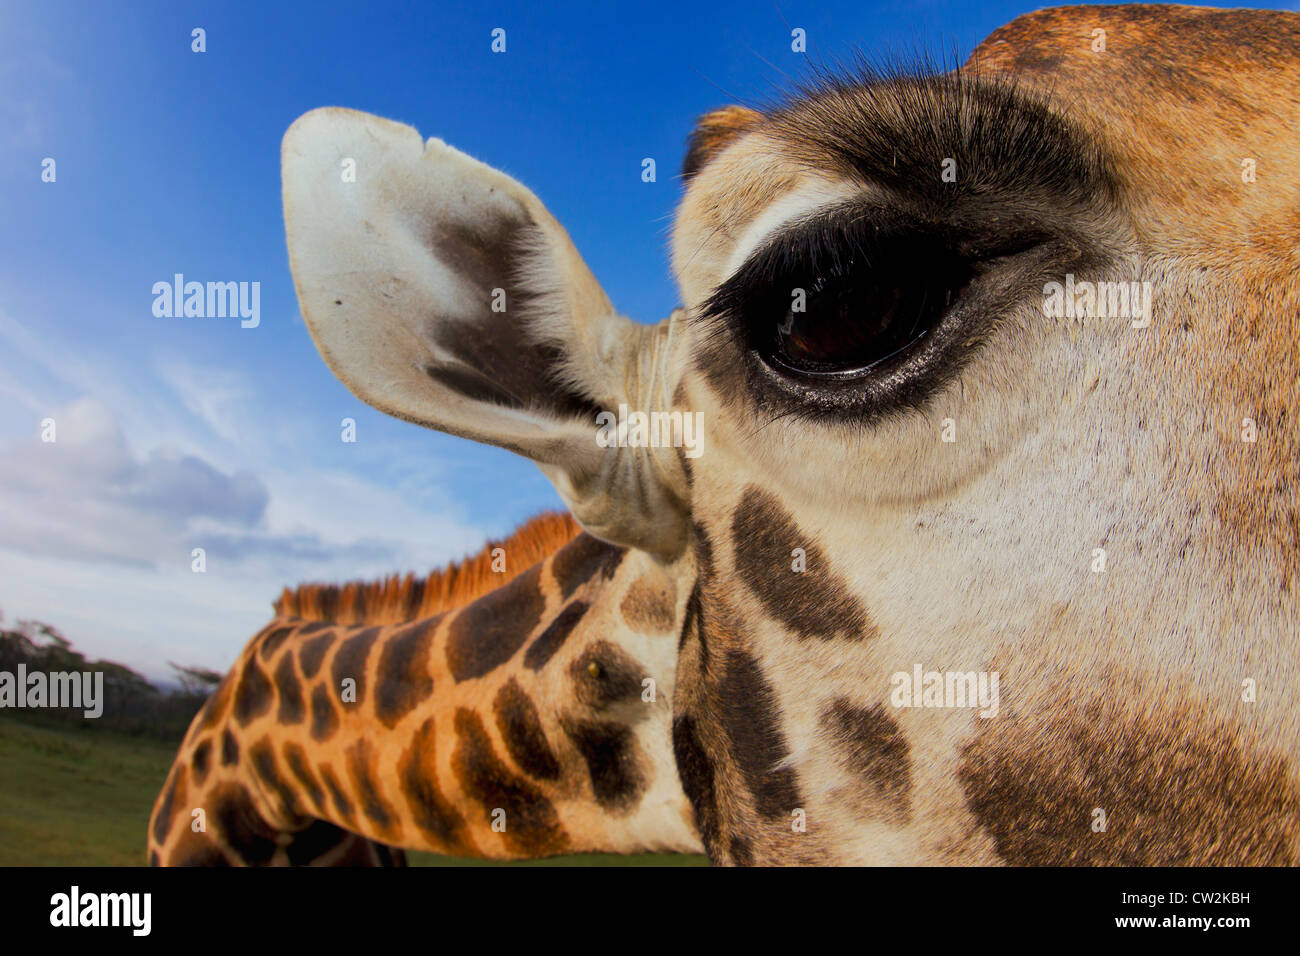 Close-up de girafas Rothschild (Giraffa camelopardalis rothschildi) ojo. Imagen De Stock